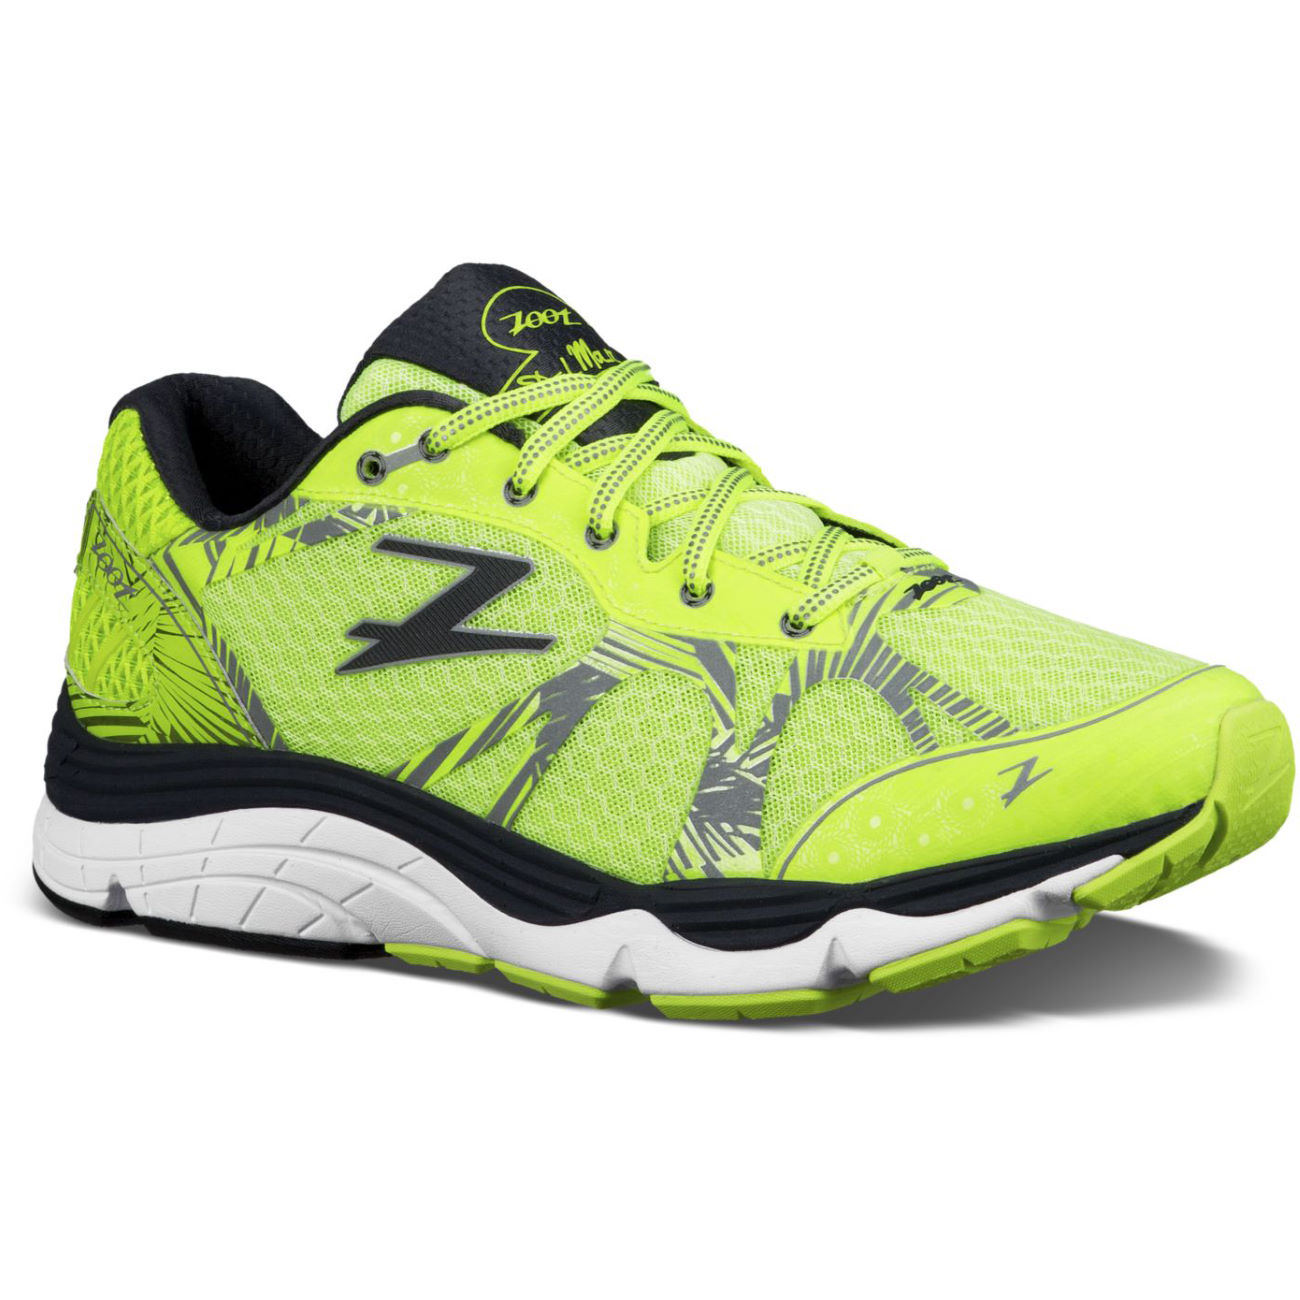 RUNNING SHOE ZOOT M DEL MAR - OUTLET RUNNING - OUTLET ... 7ccfa55328c